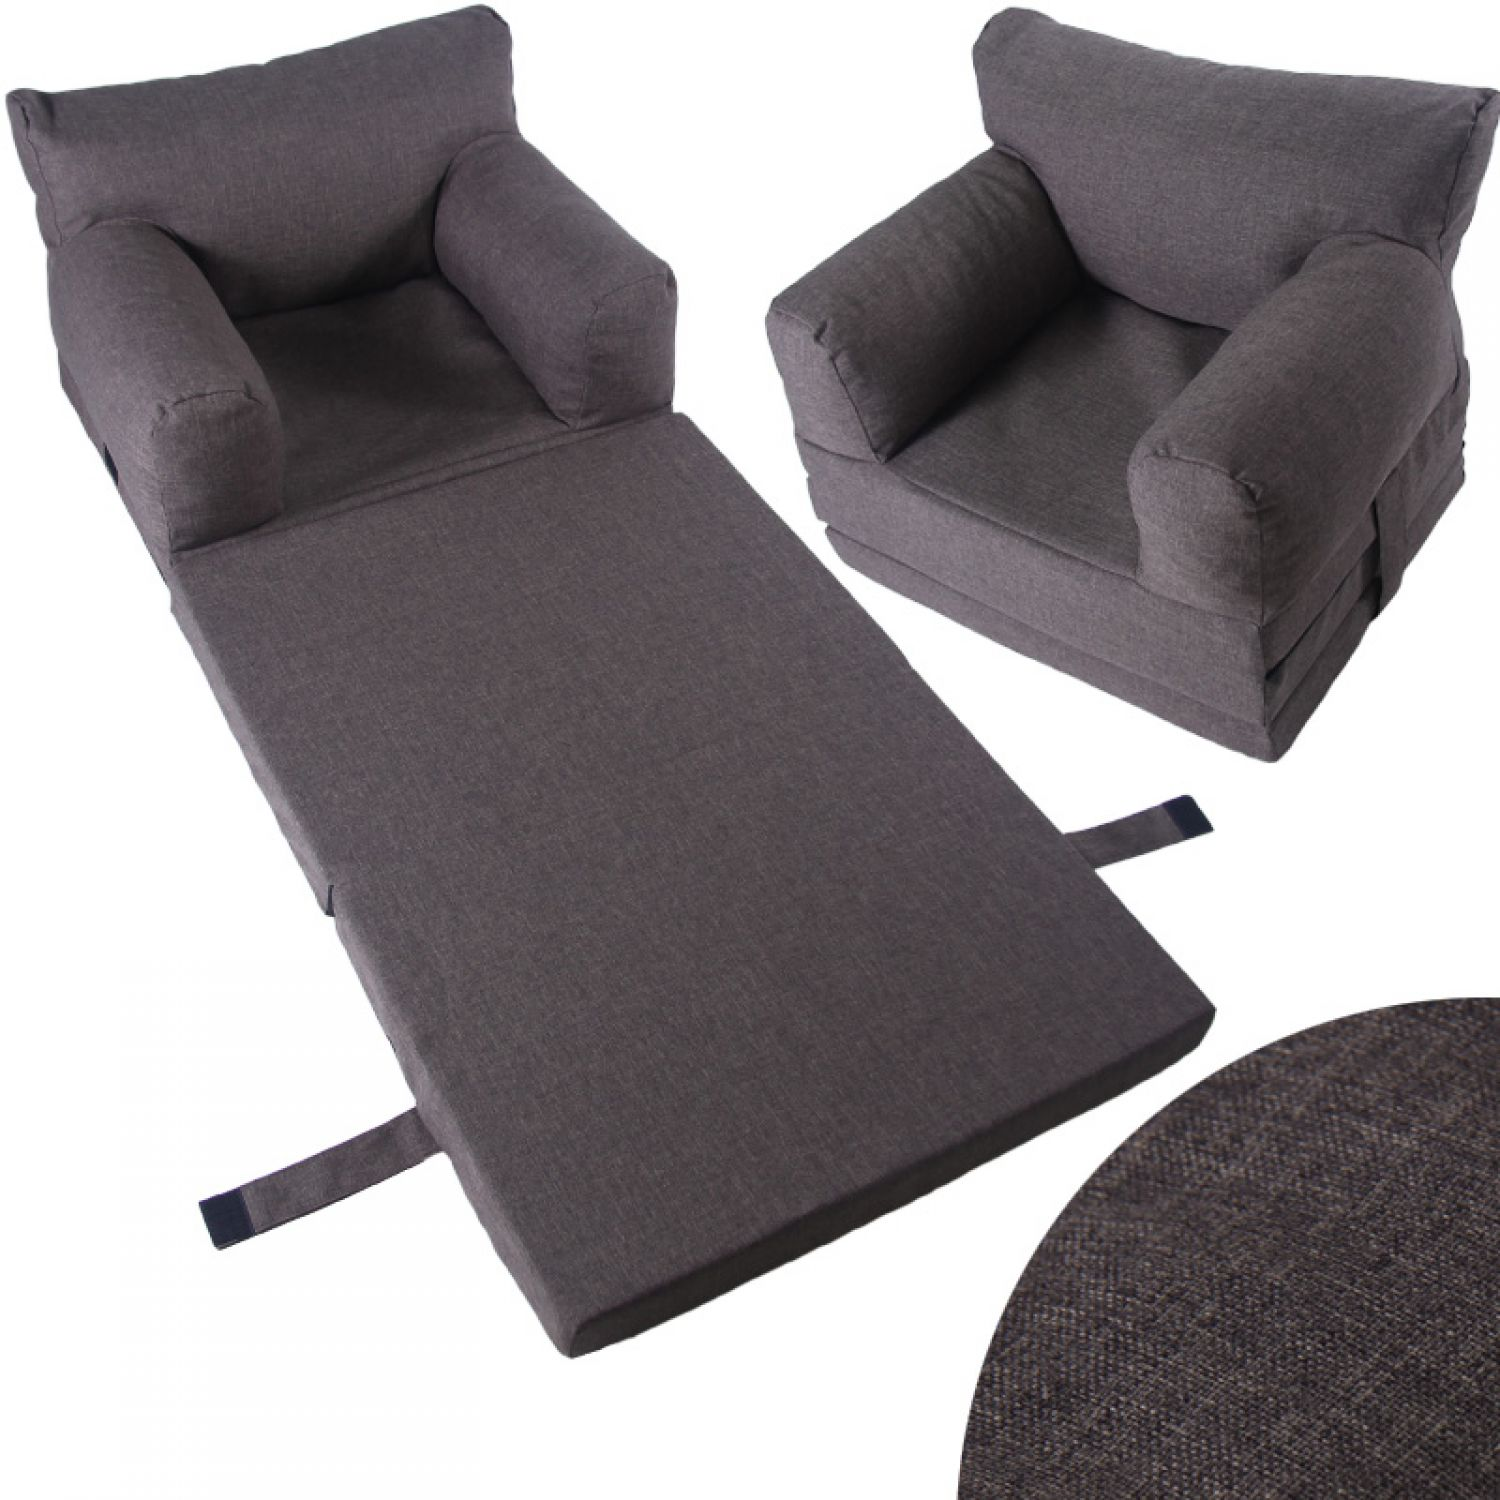 Kindermoebel Sessel Kindersessel Kindersofa Kindermöbel Sessel Kinder